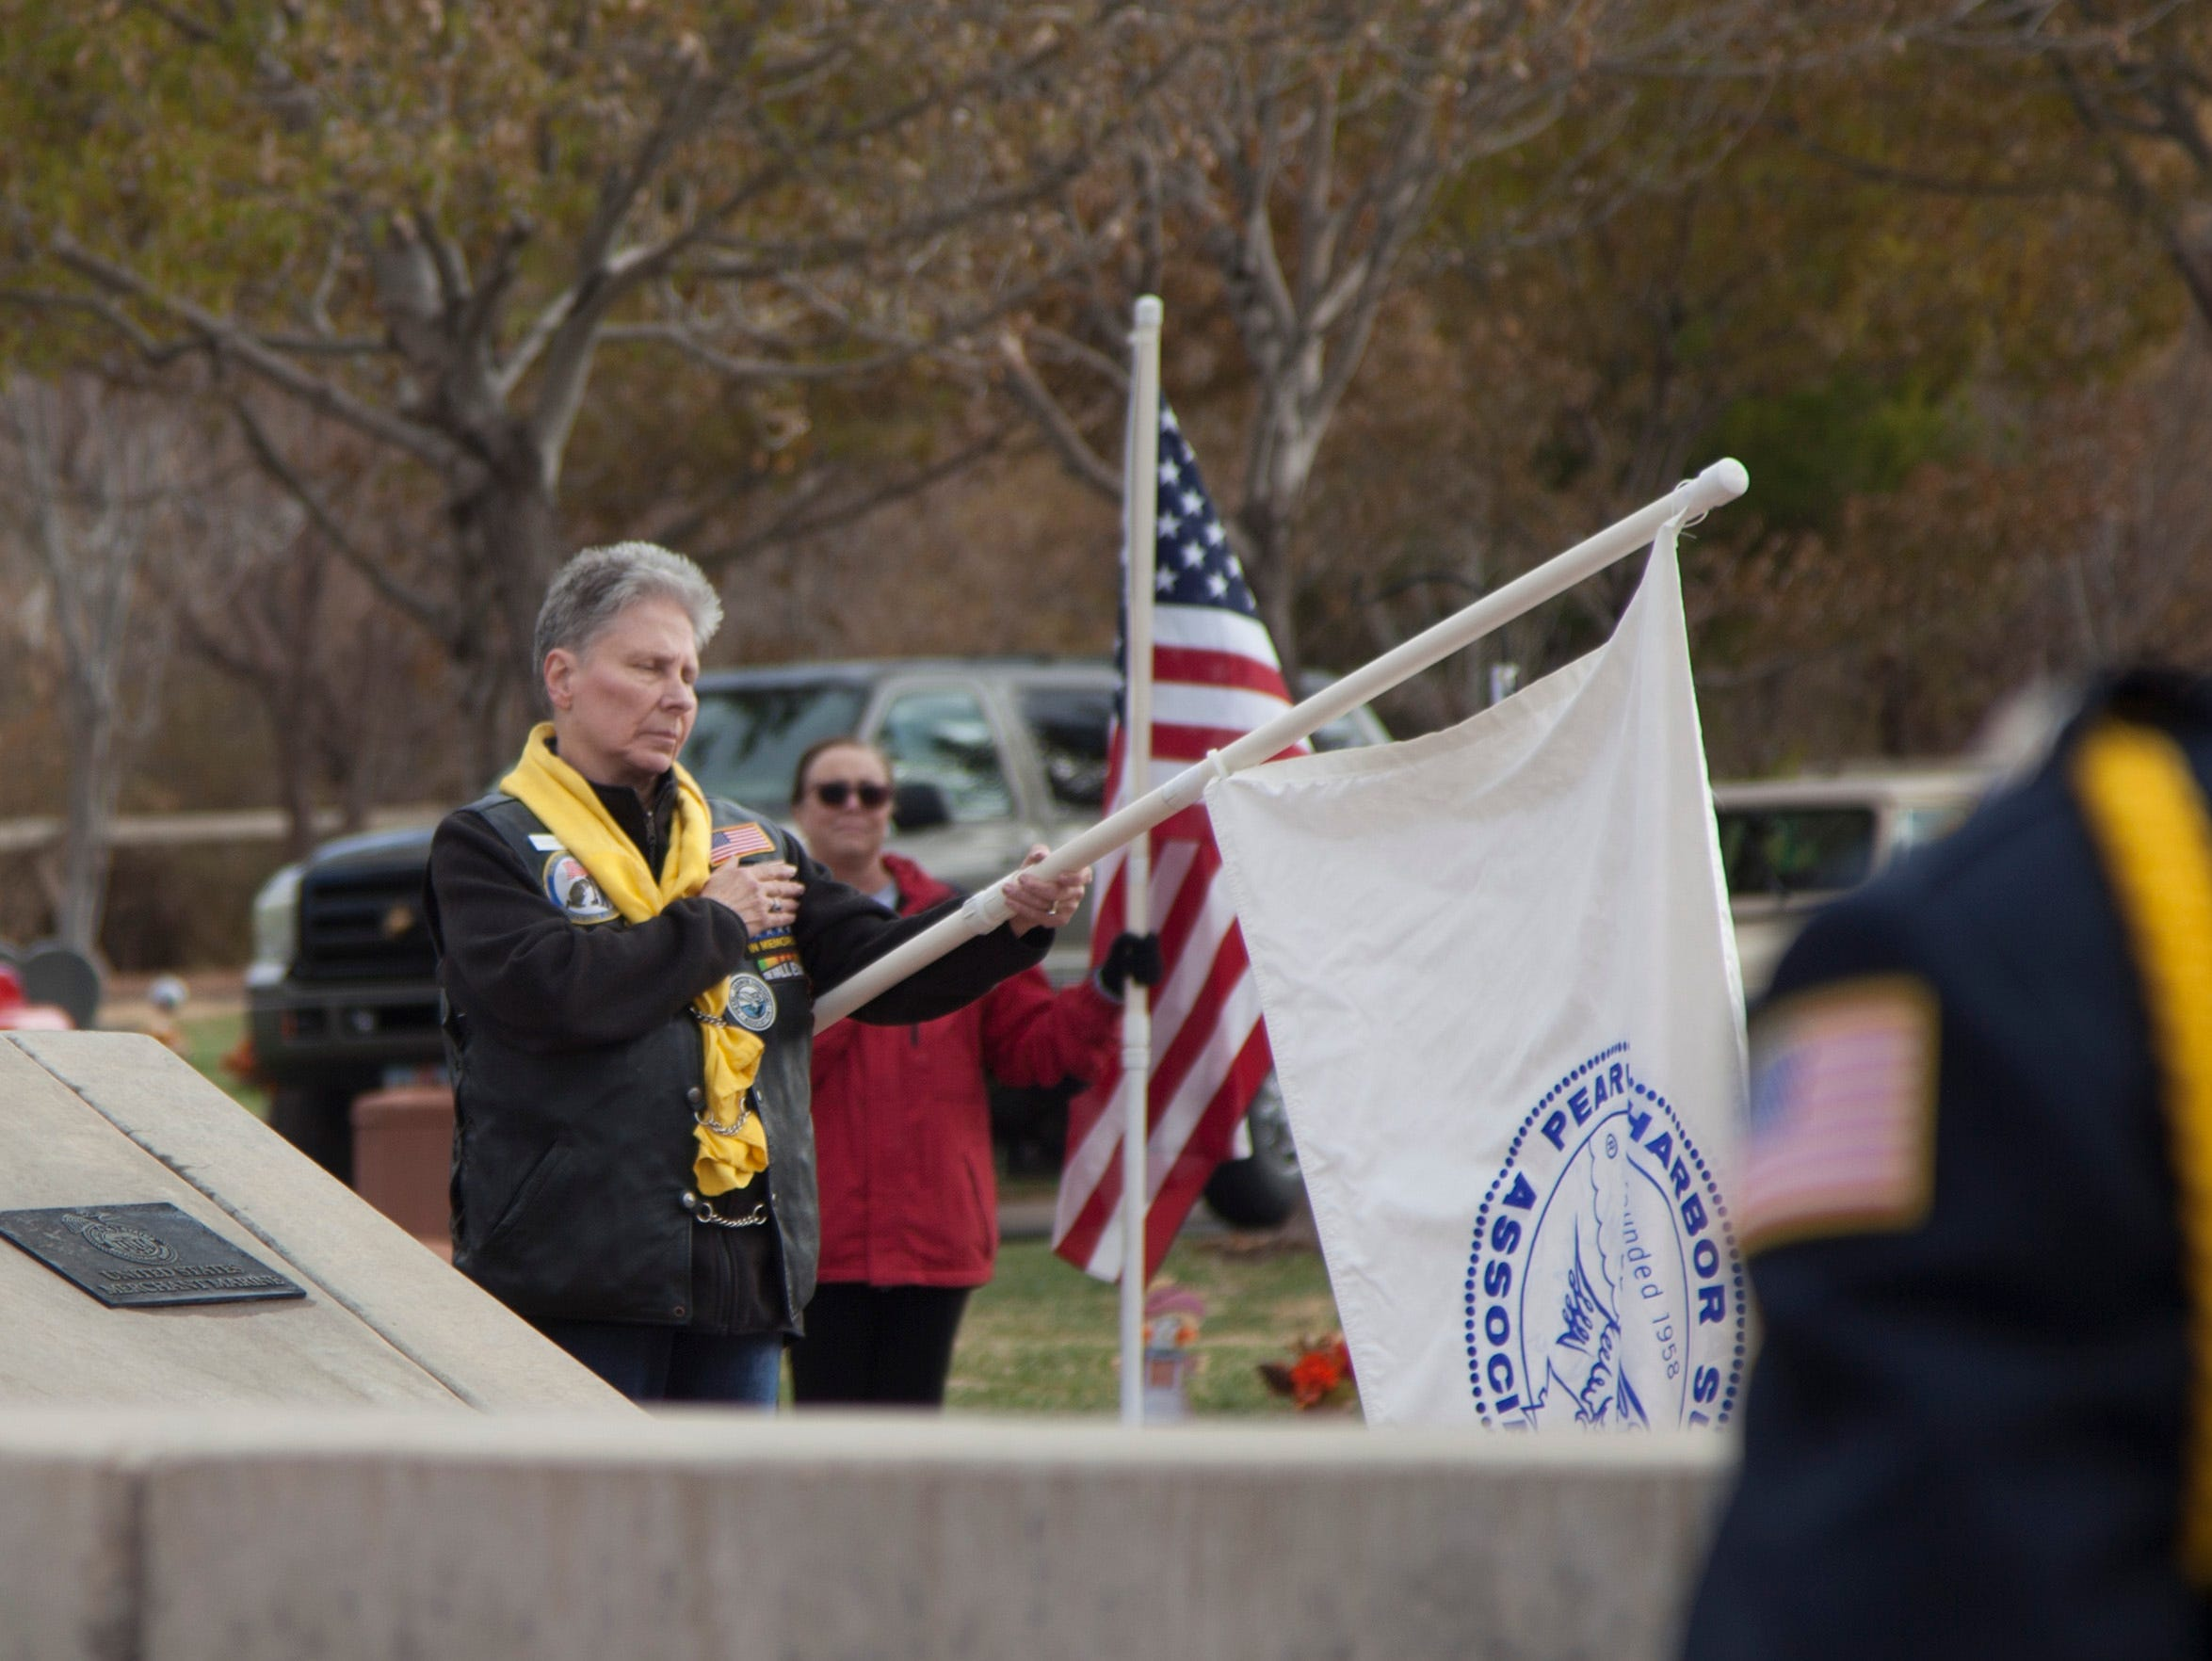 Veterans and members of the community gather to commemorate Pearl Harbor at the Tonaquint Cemetery Friday, Dec. 7, 2018.